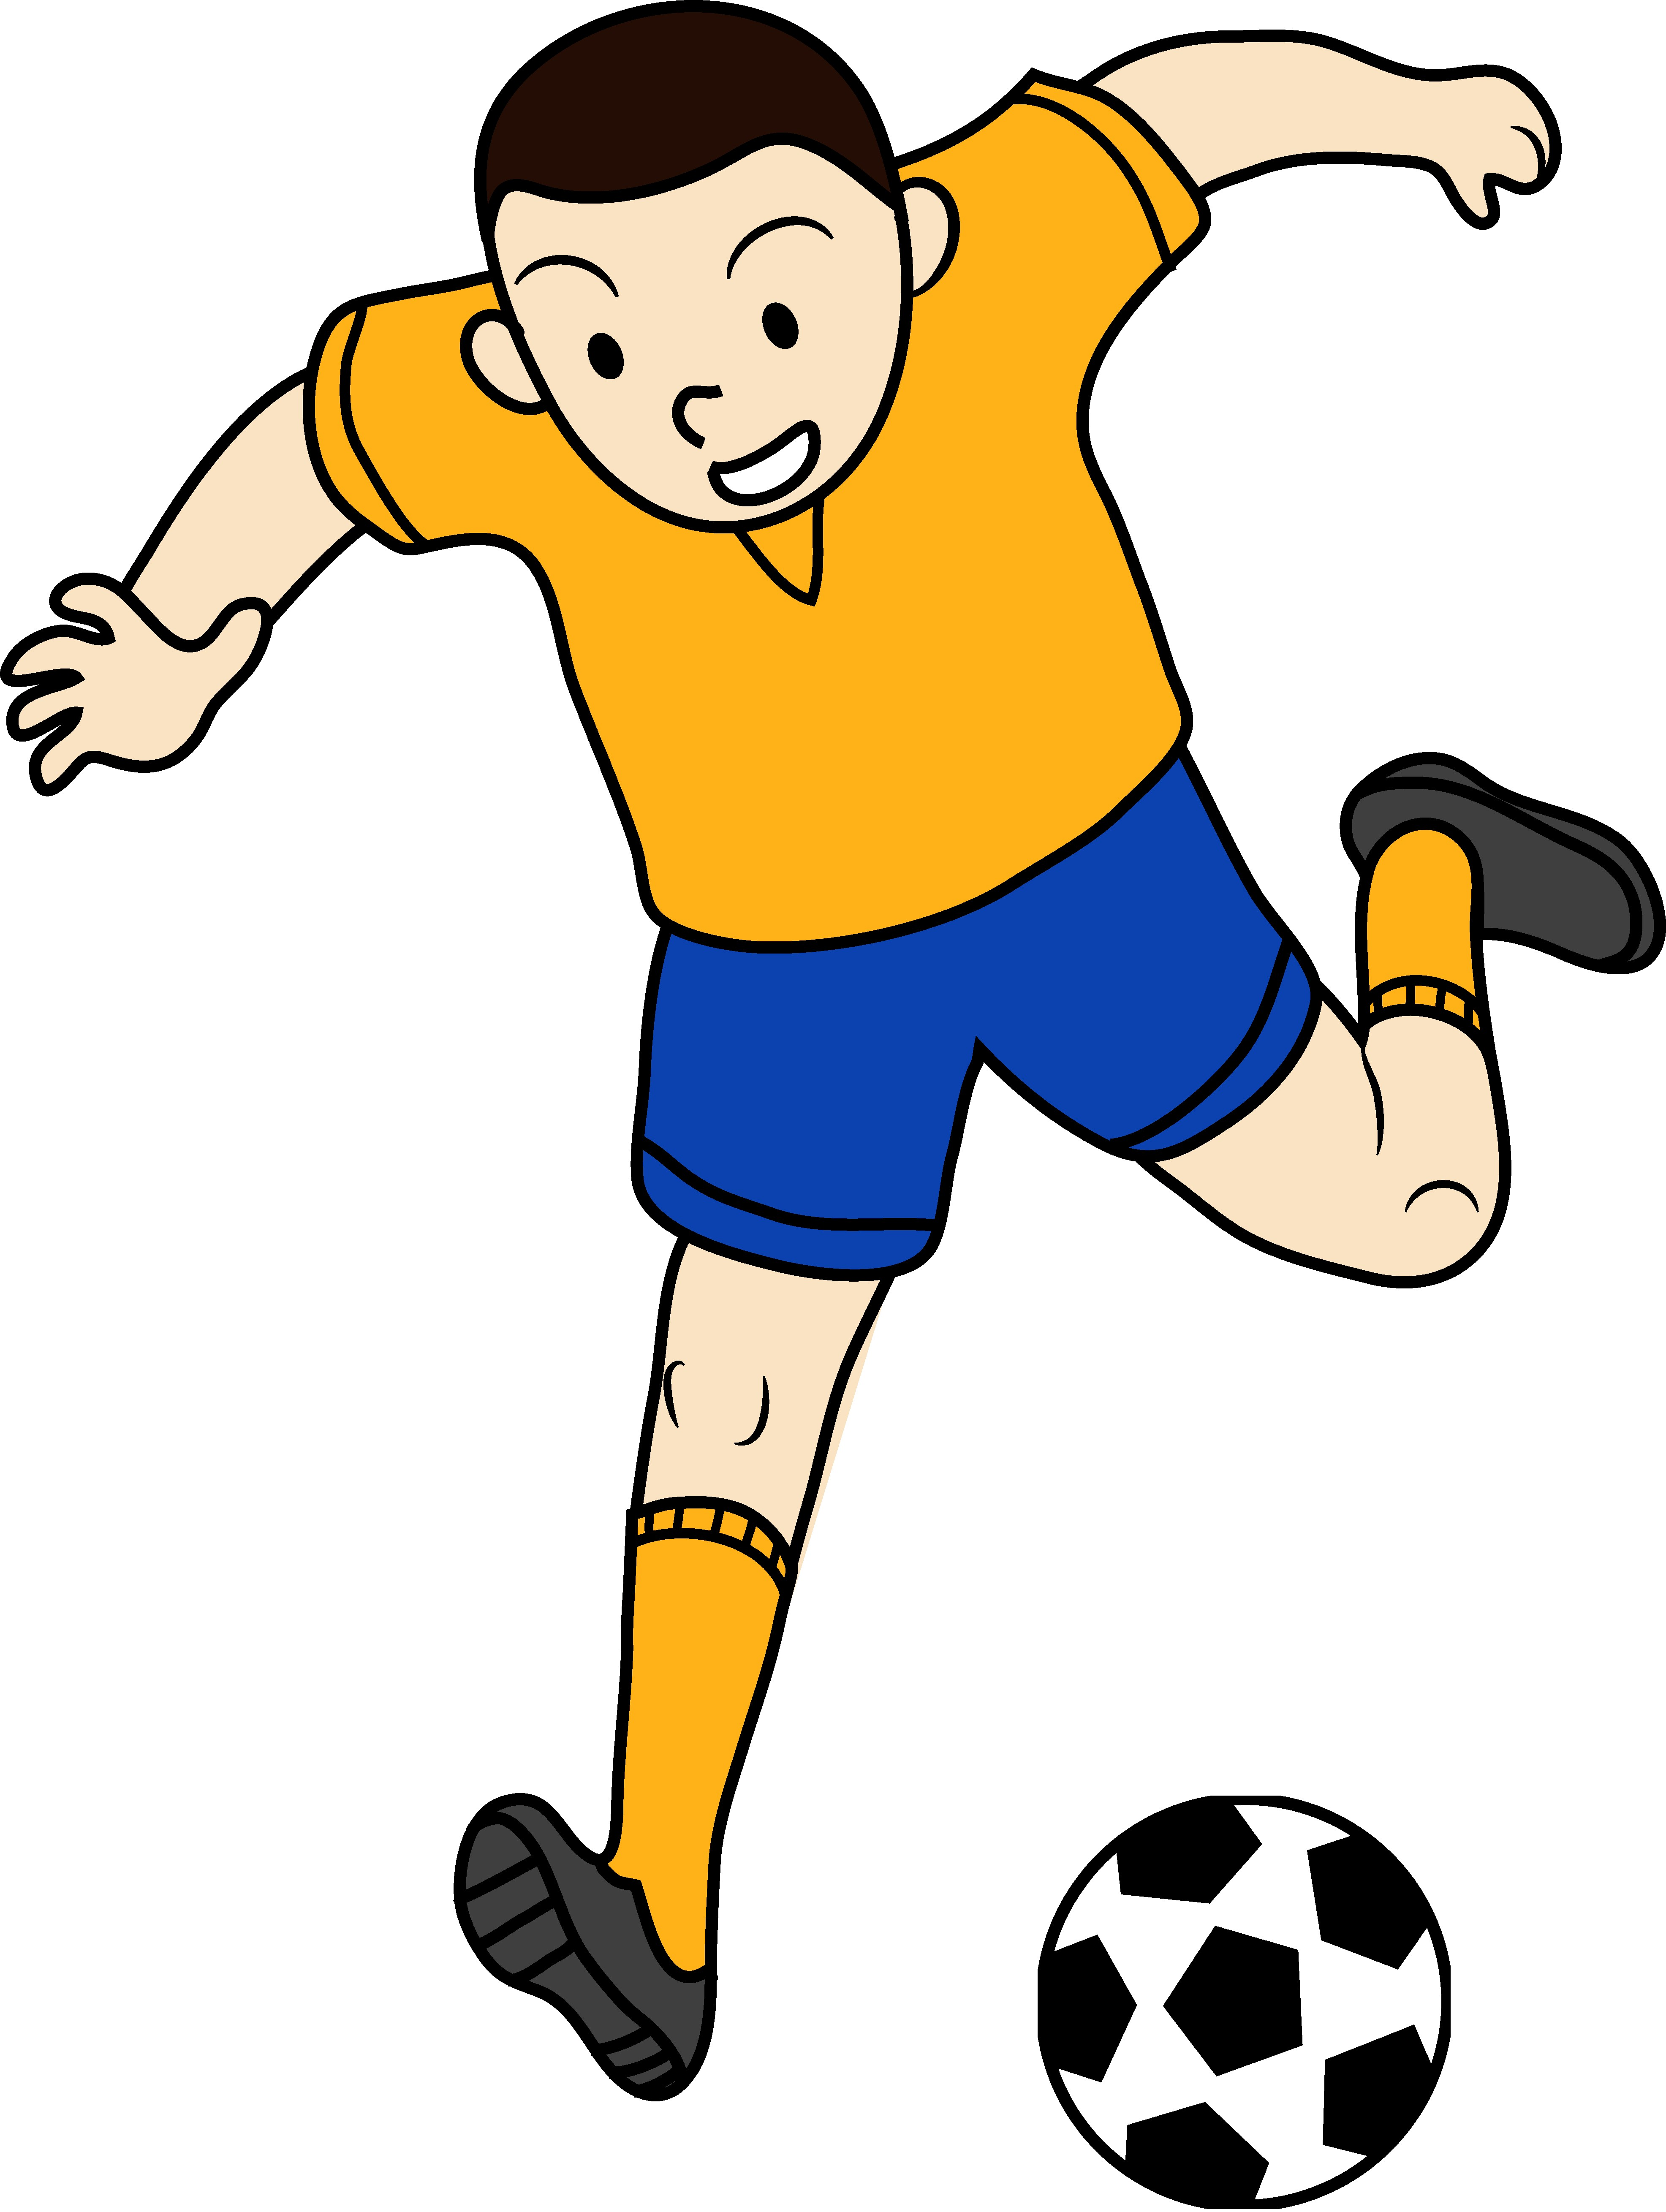 3945x5238 Kid Playing Soccer Or Football Free Clip Art Pleasing Games